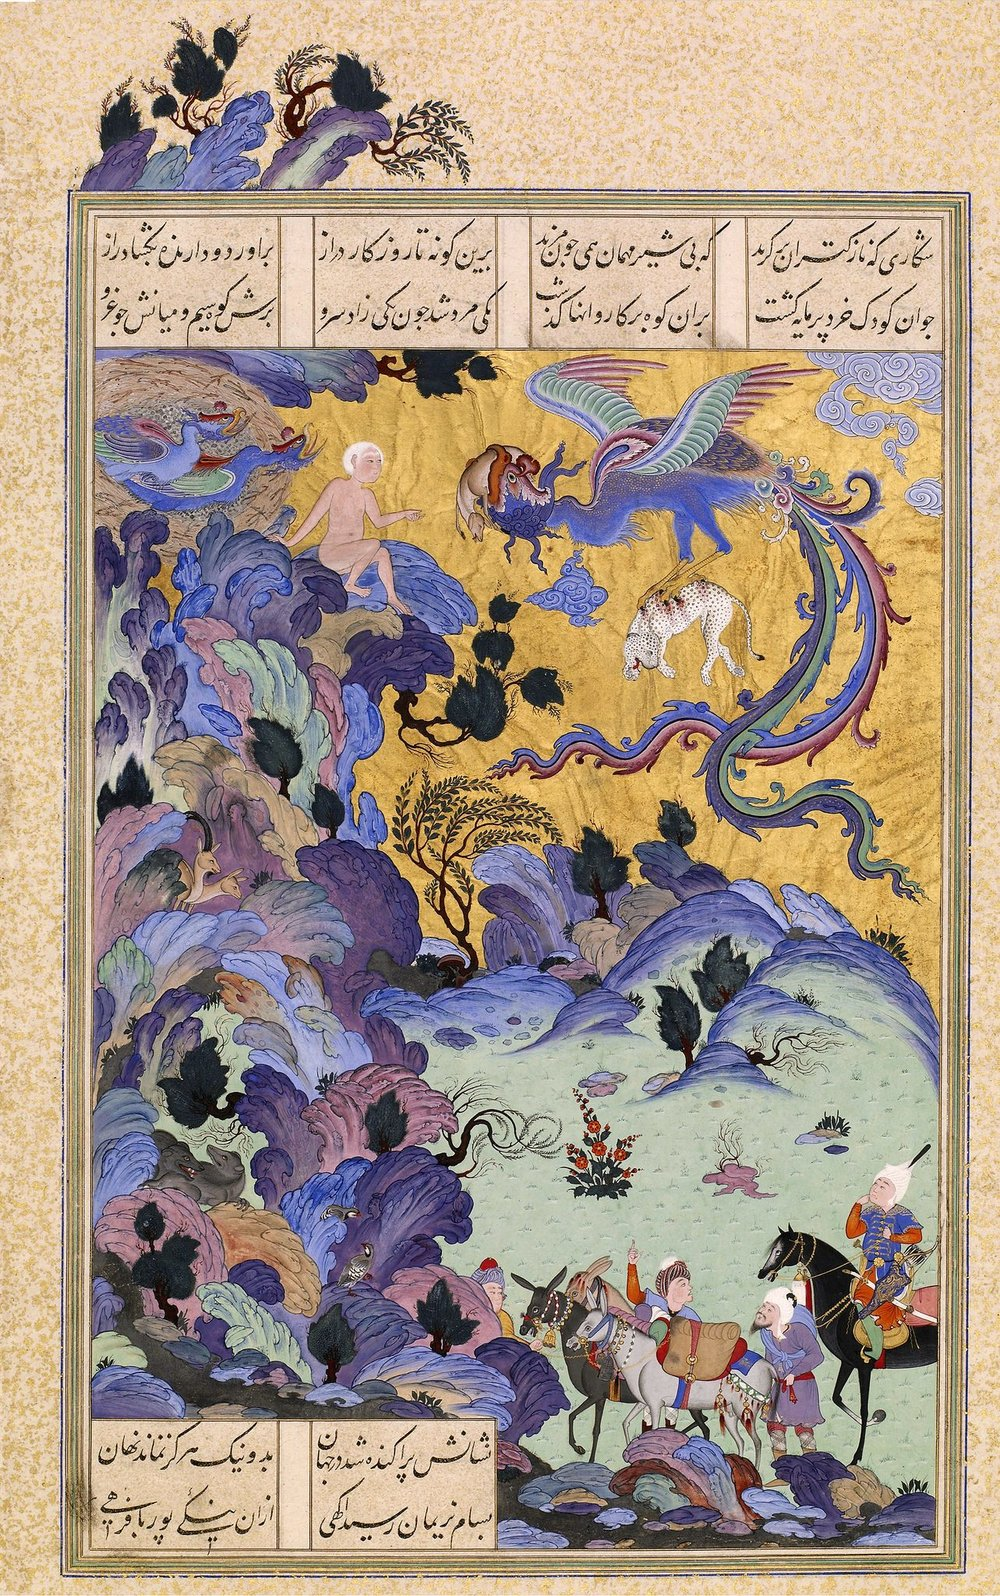 Zal is Sighted by a Caravan,  attributed to Abdul Aziz    Freer Sackler Gallery, c. 1525